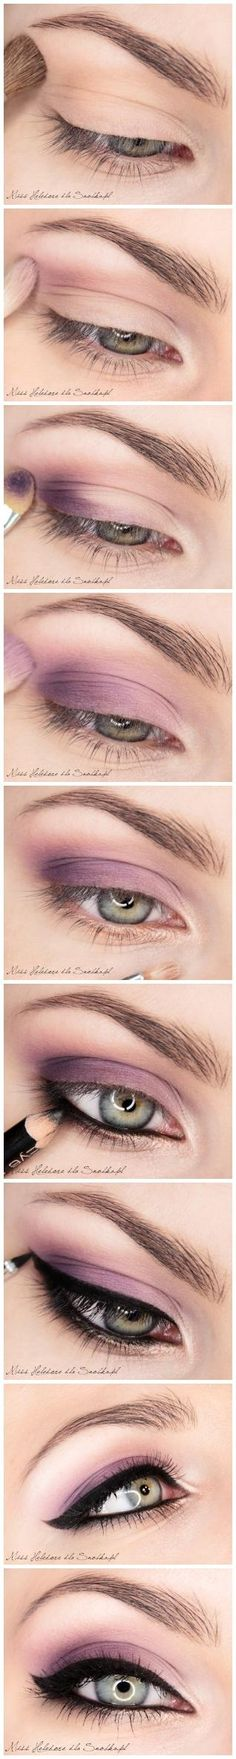 eyeliner + purple eye shadow